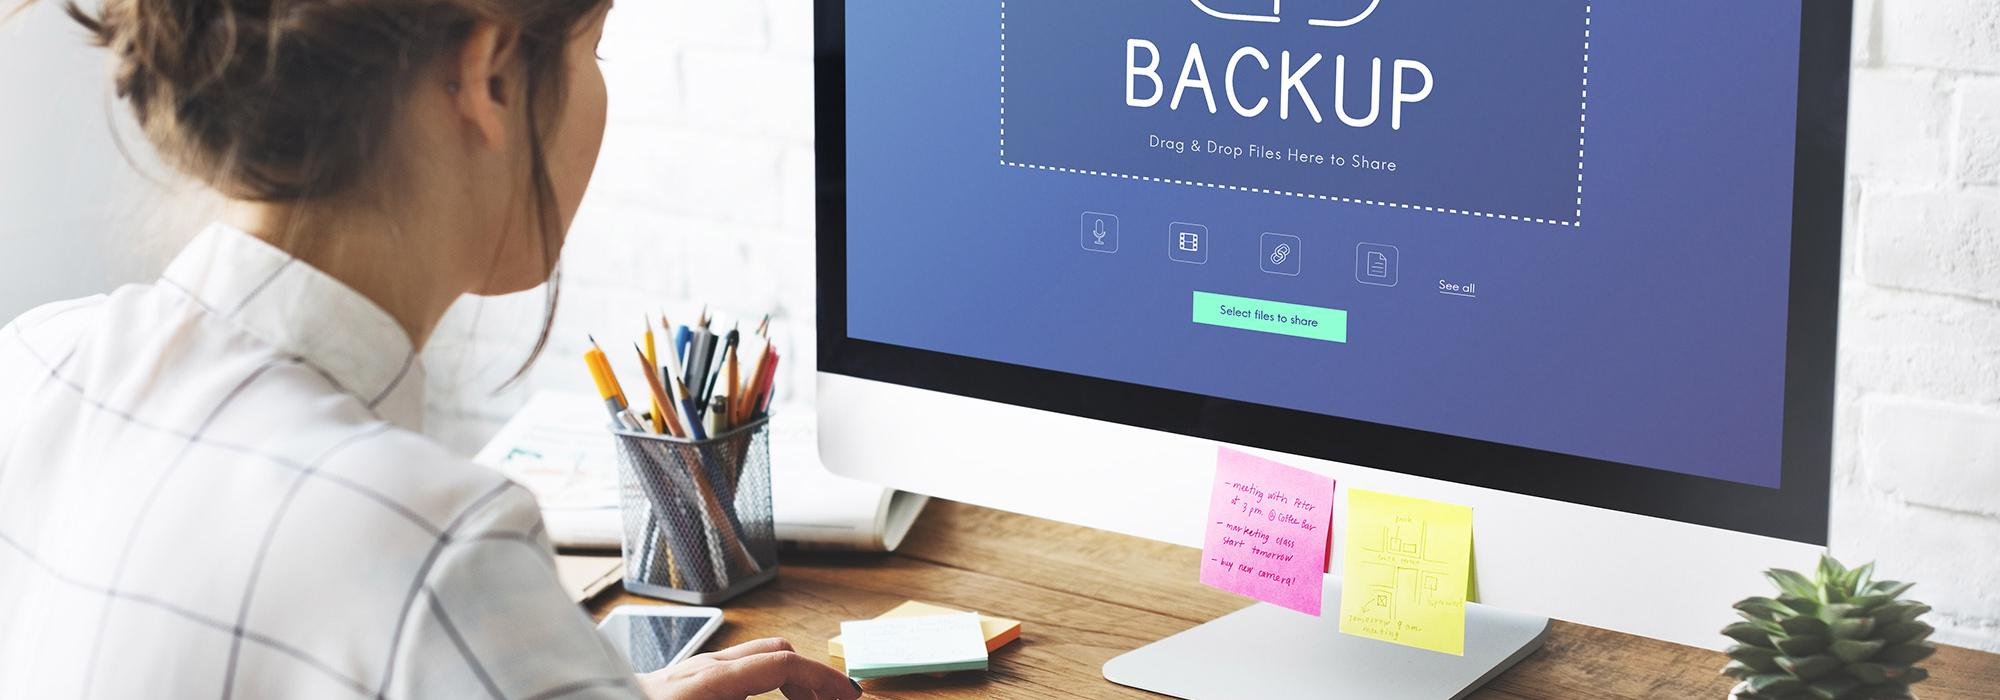 How to Backup your PC and protect your data